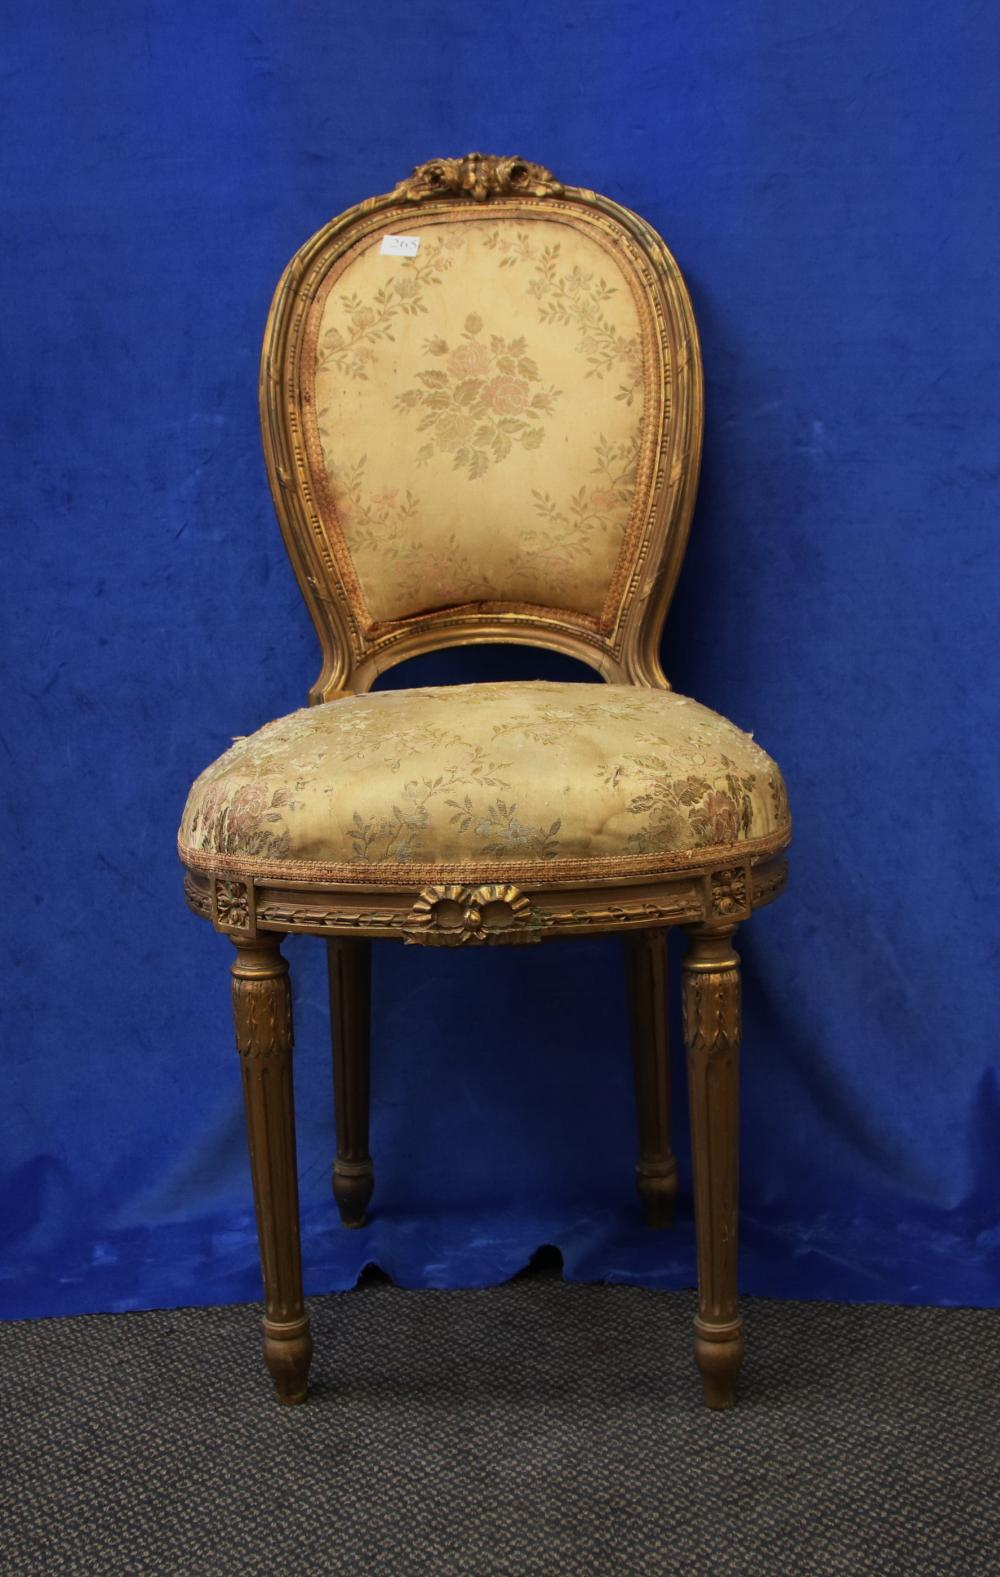 LOUIS XV STYLE GOLD FRENCH BEDROOM CHAIR, GOLD FABRIC UPHOLSTERY, CIRCA 1910'S